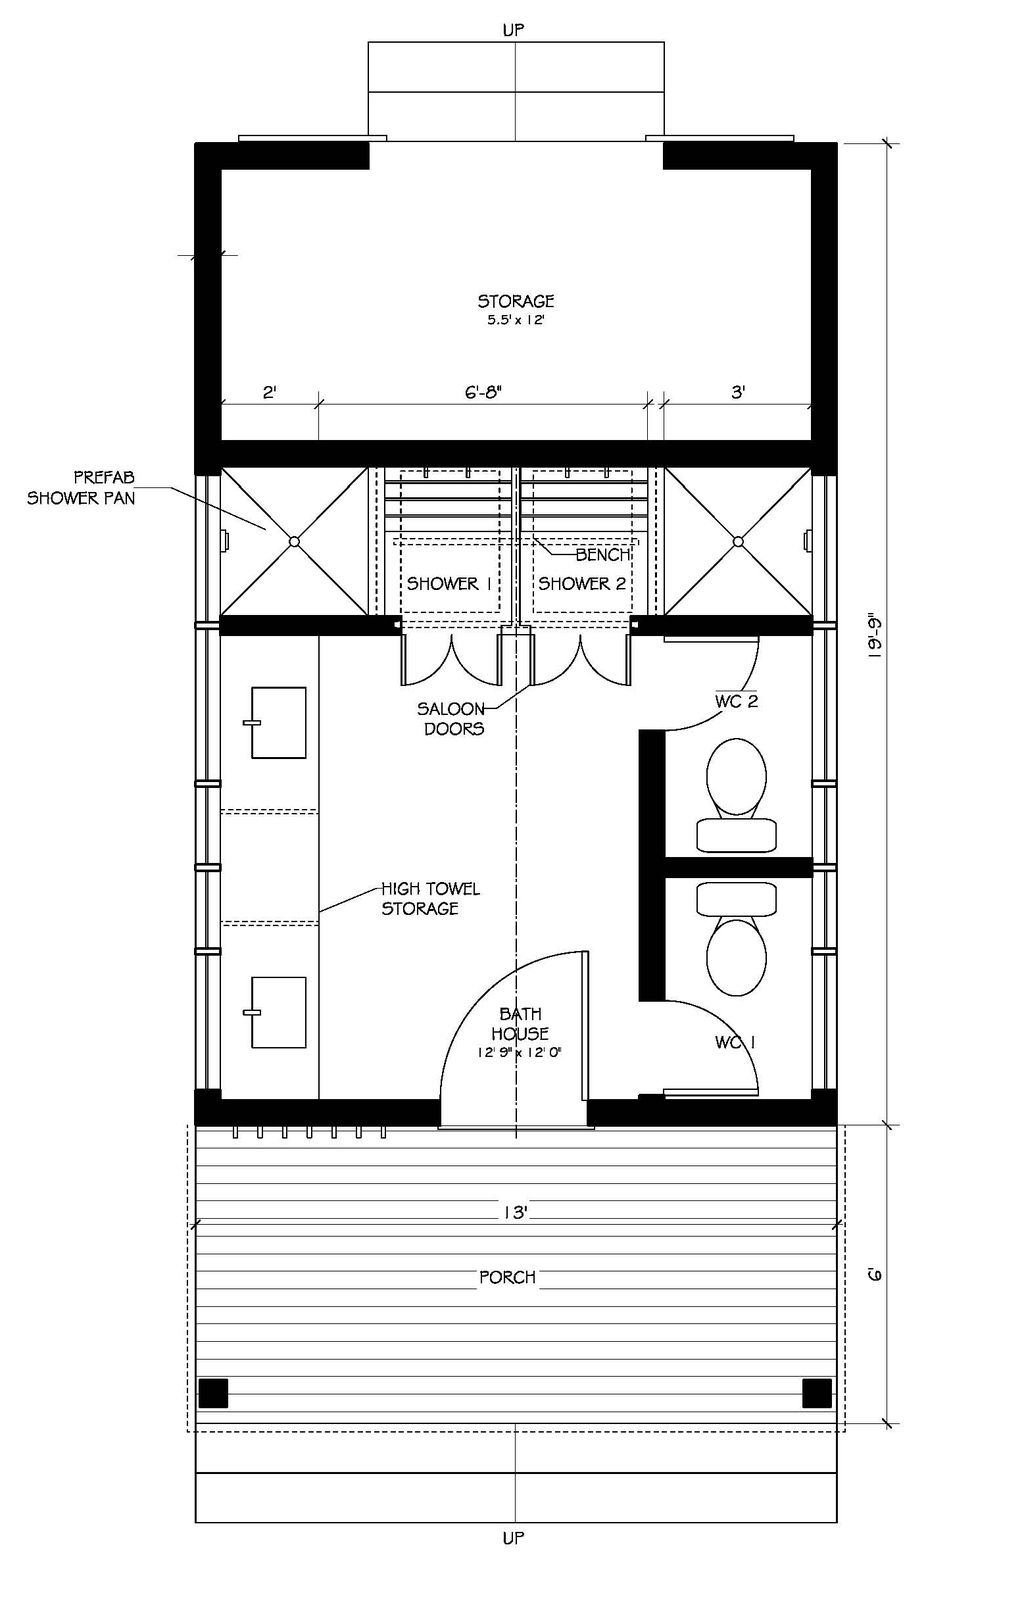 Farmhouse Style House Plan 0 Beds 1 Baths 150 Sq Ft Plan 889 1 Bathroom Floor Plans House Plans Farmhouse Style House